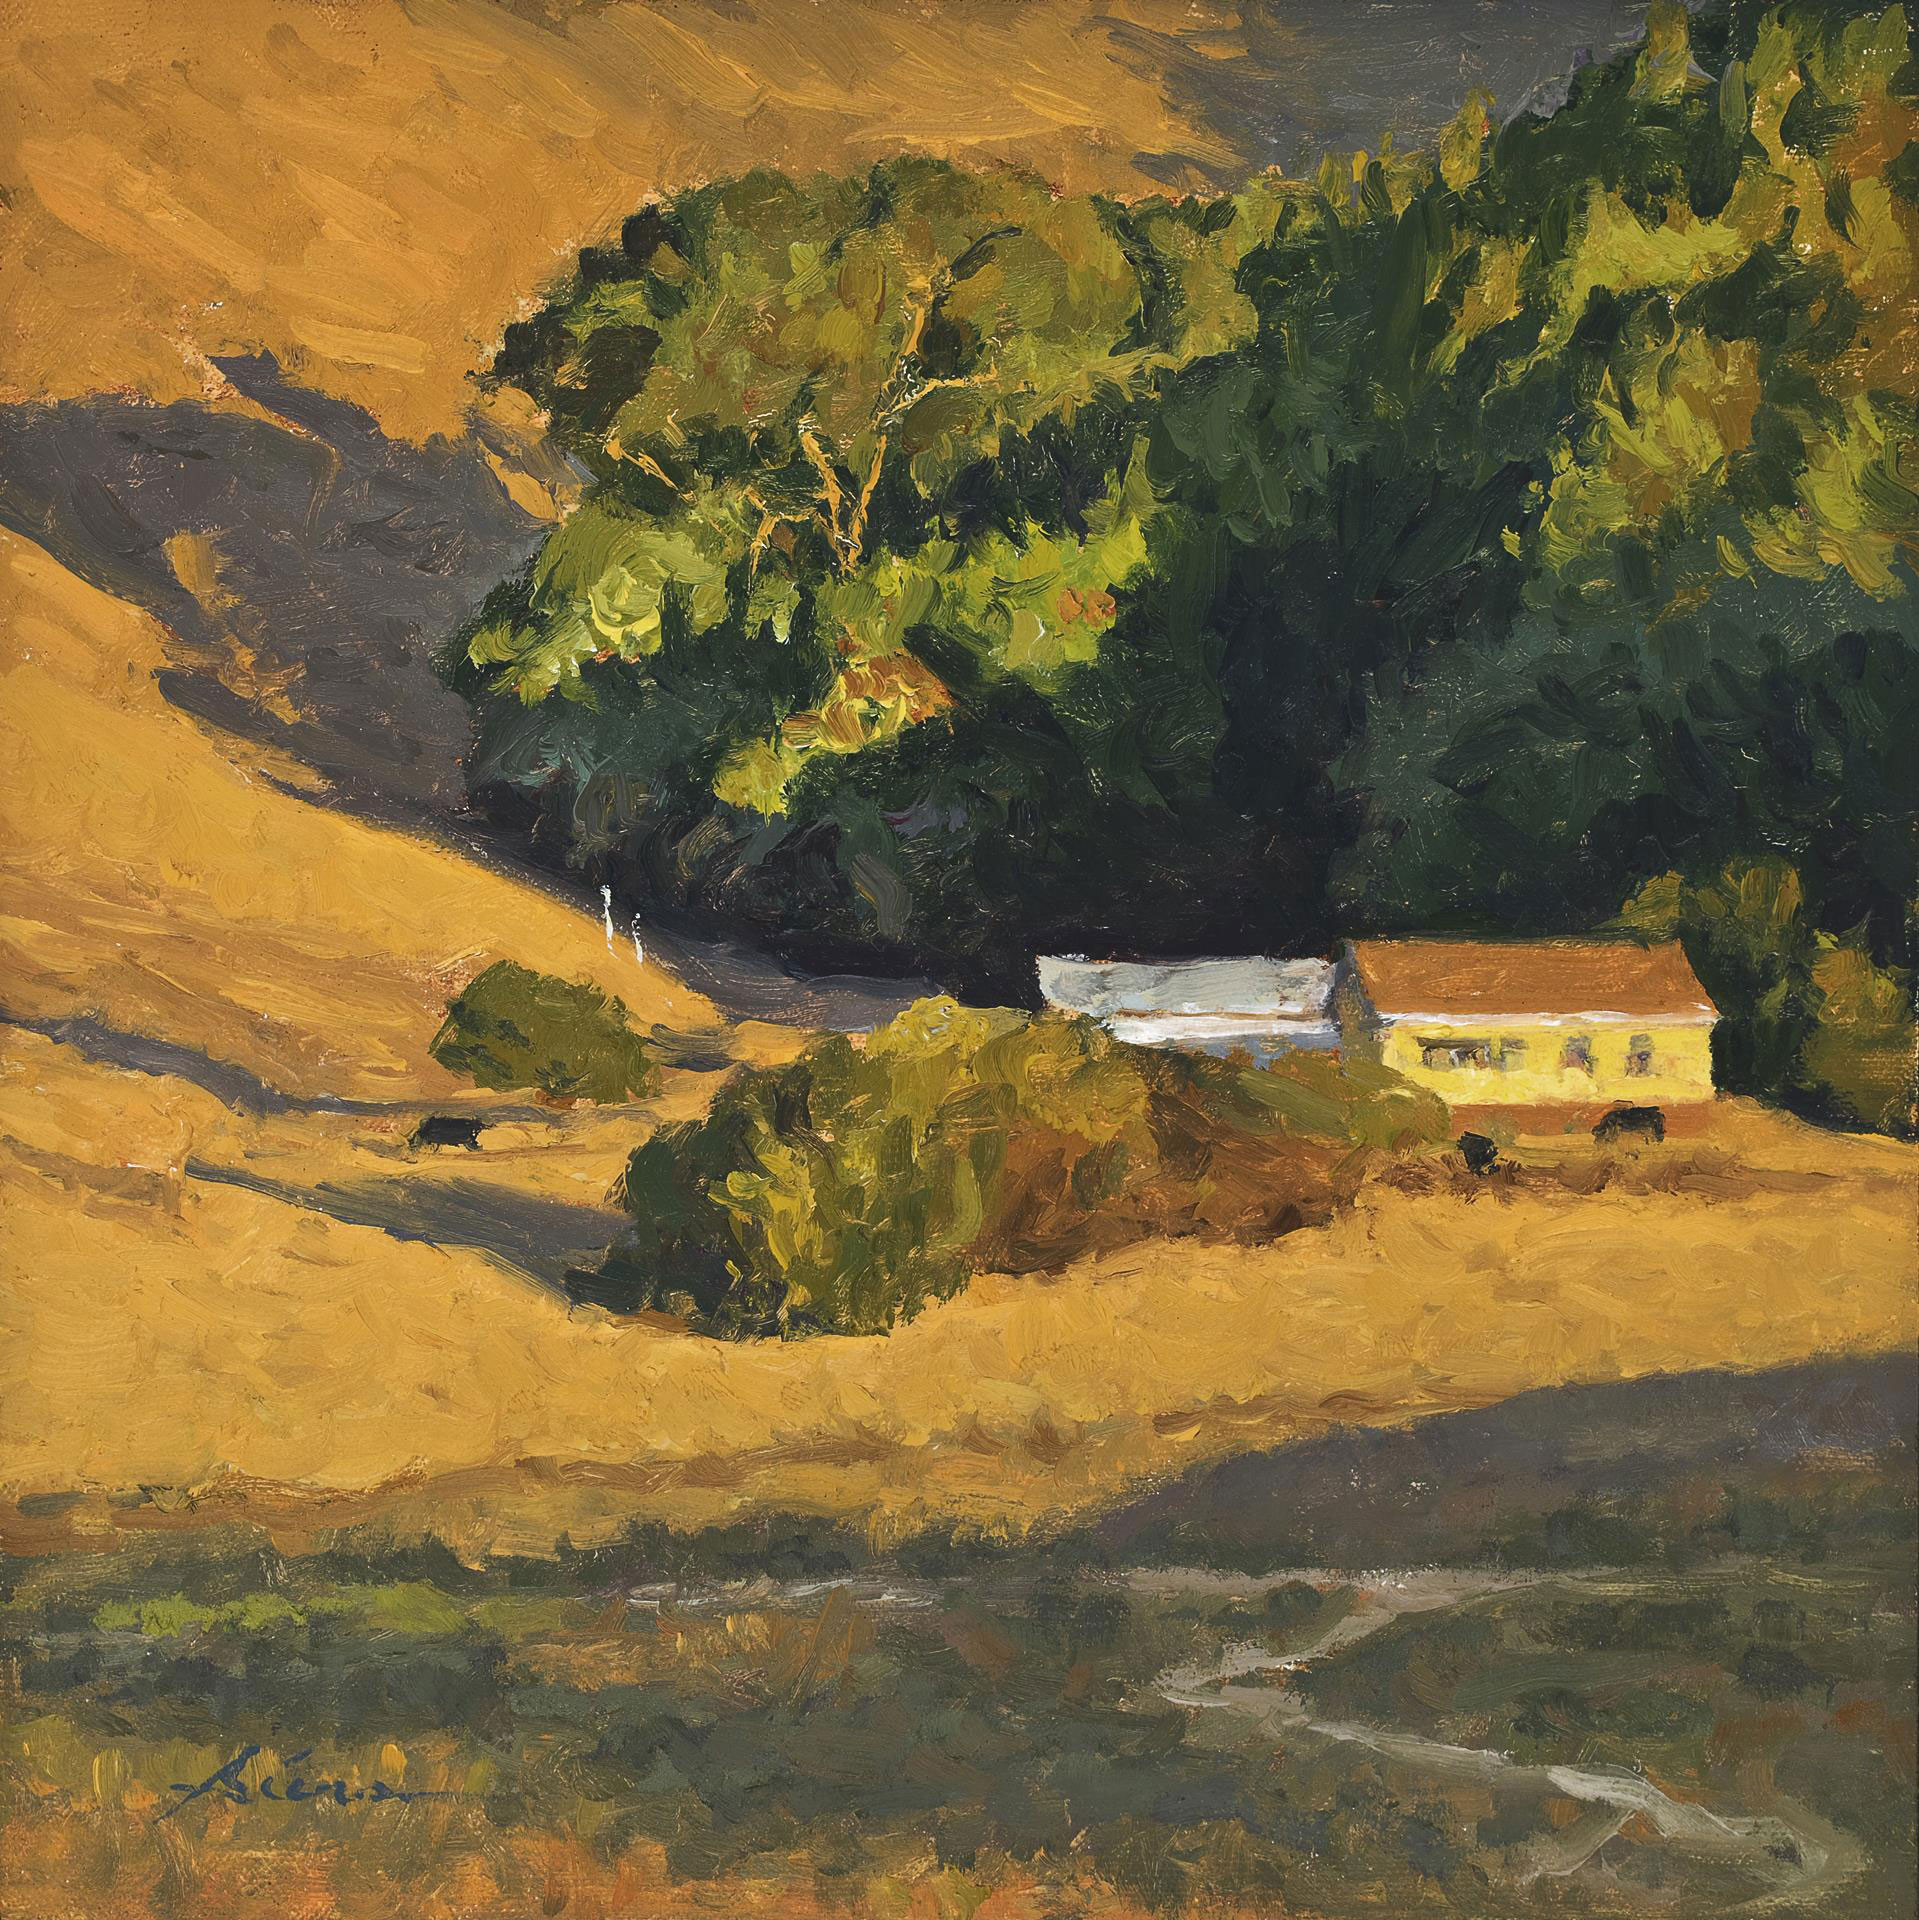 LPAPA honorable mention Golden hour